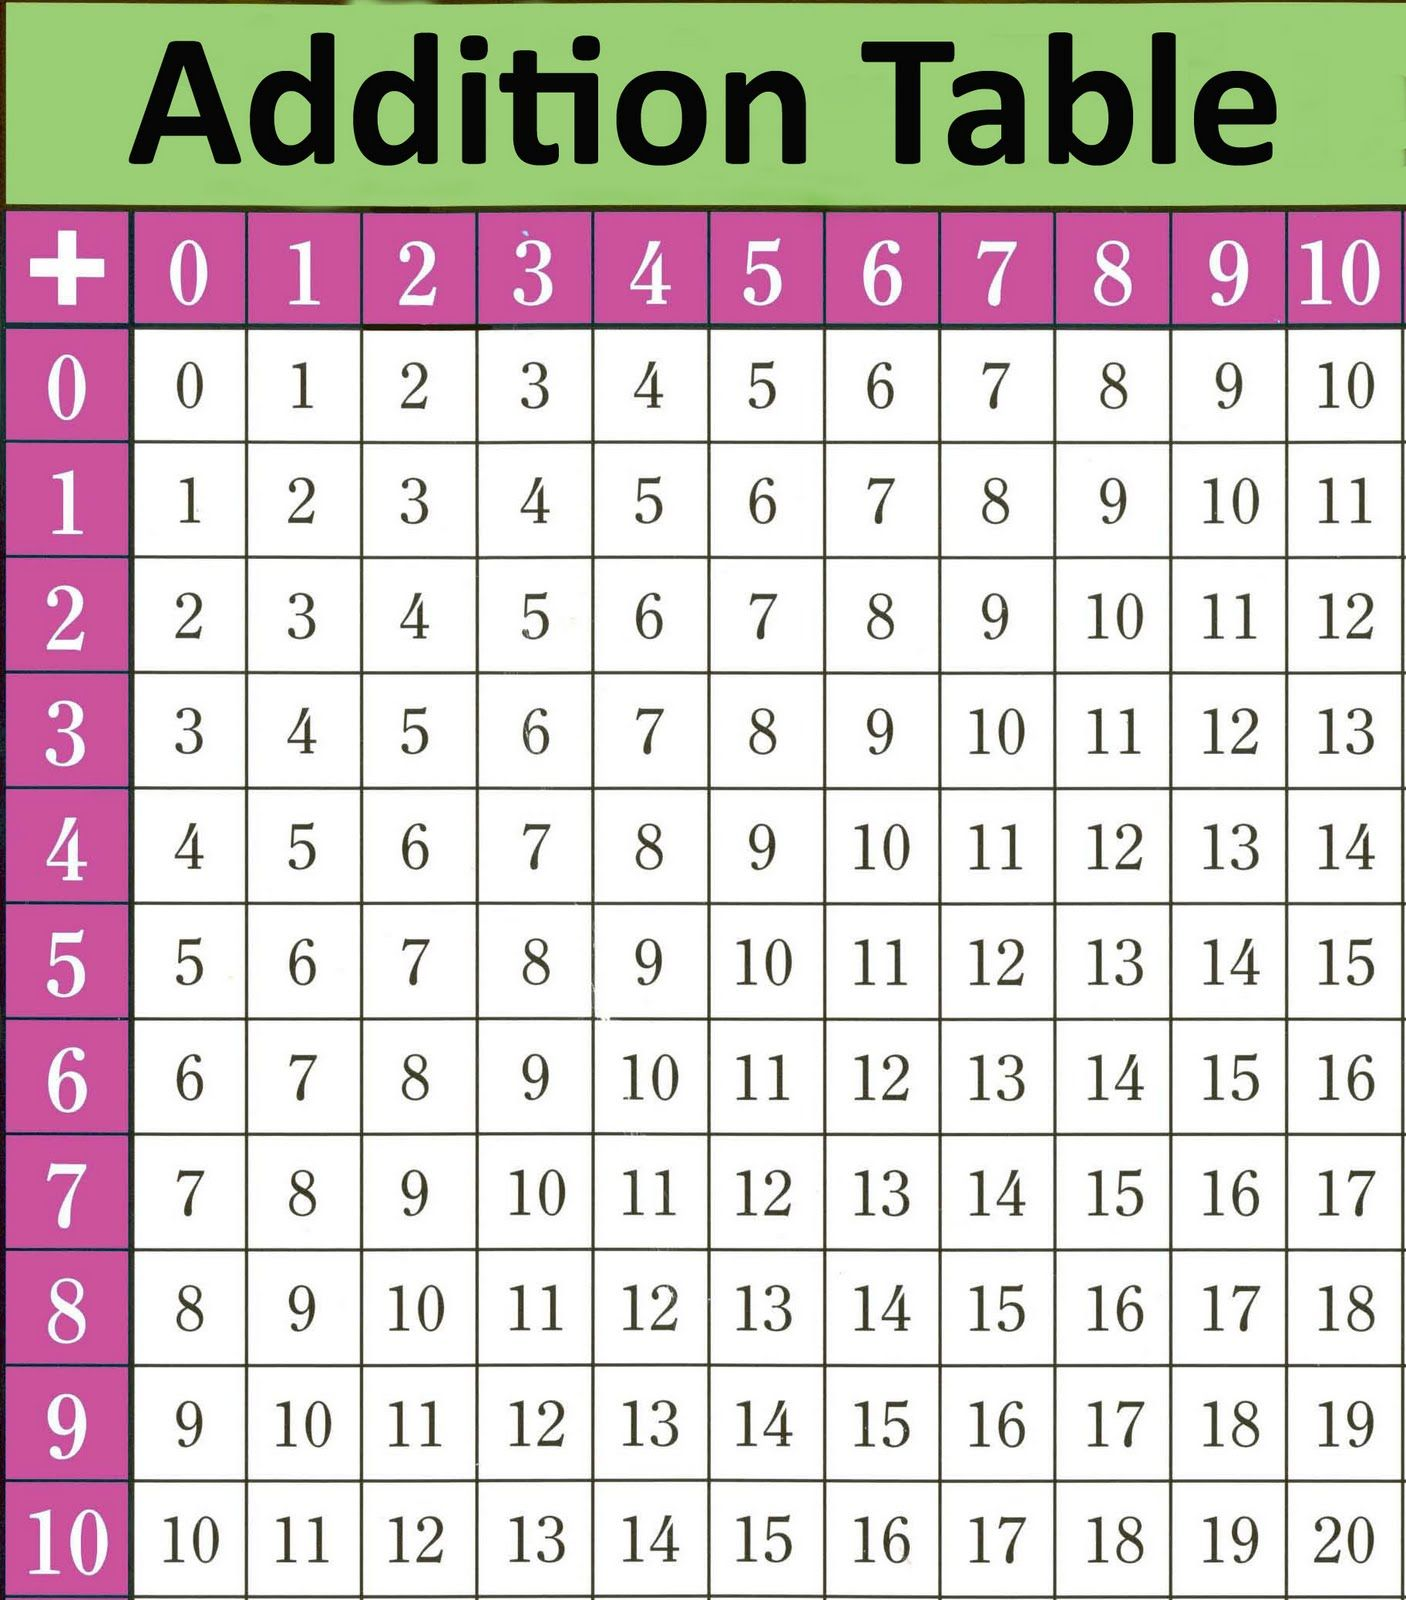 math worksheet : 1000 images about homeshool on pinterest  worksheets curriculum  : Addition Tables Worksheets